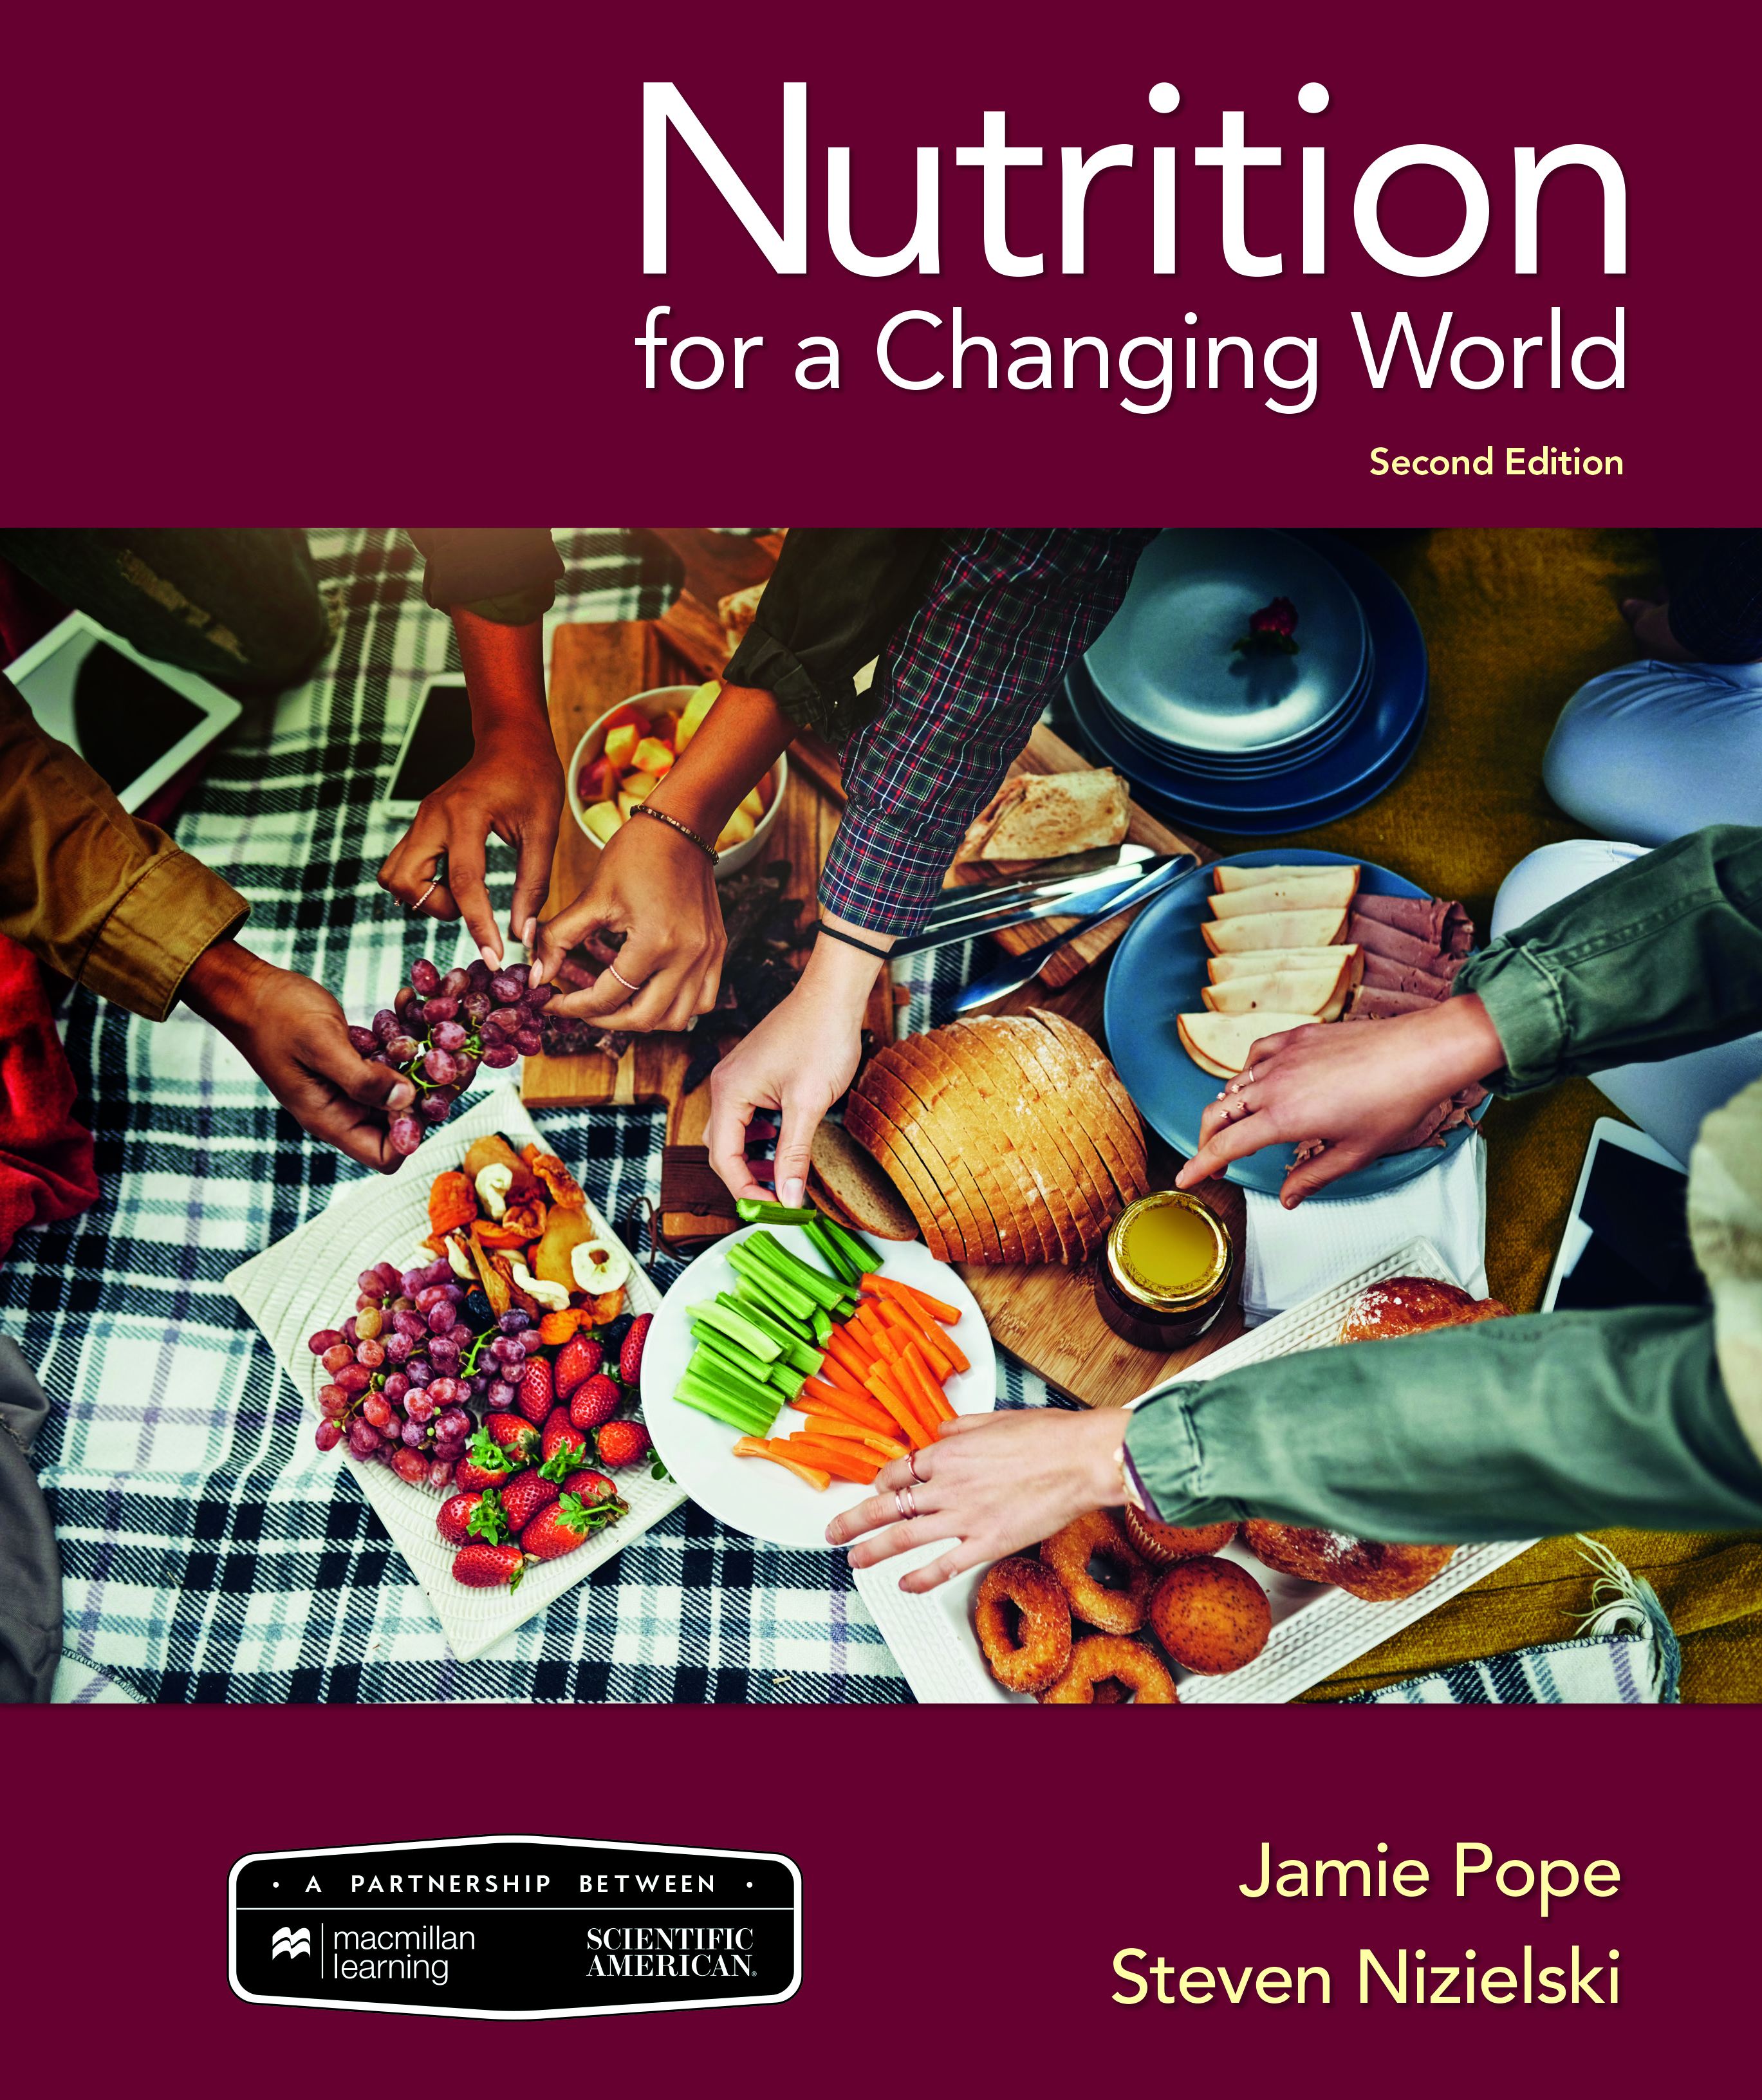 Nutrition for a Changing World